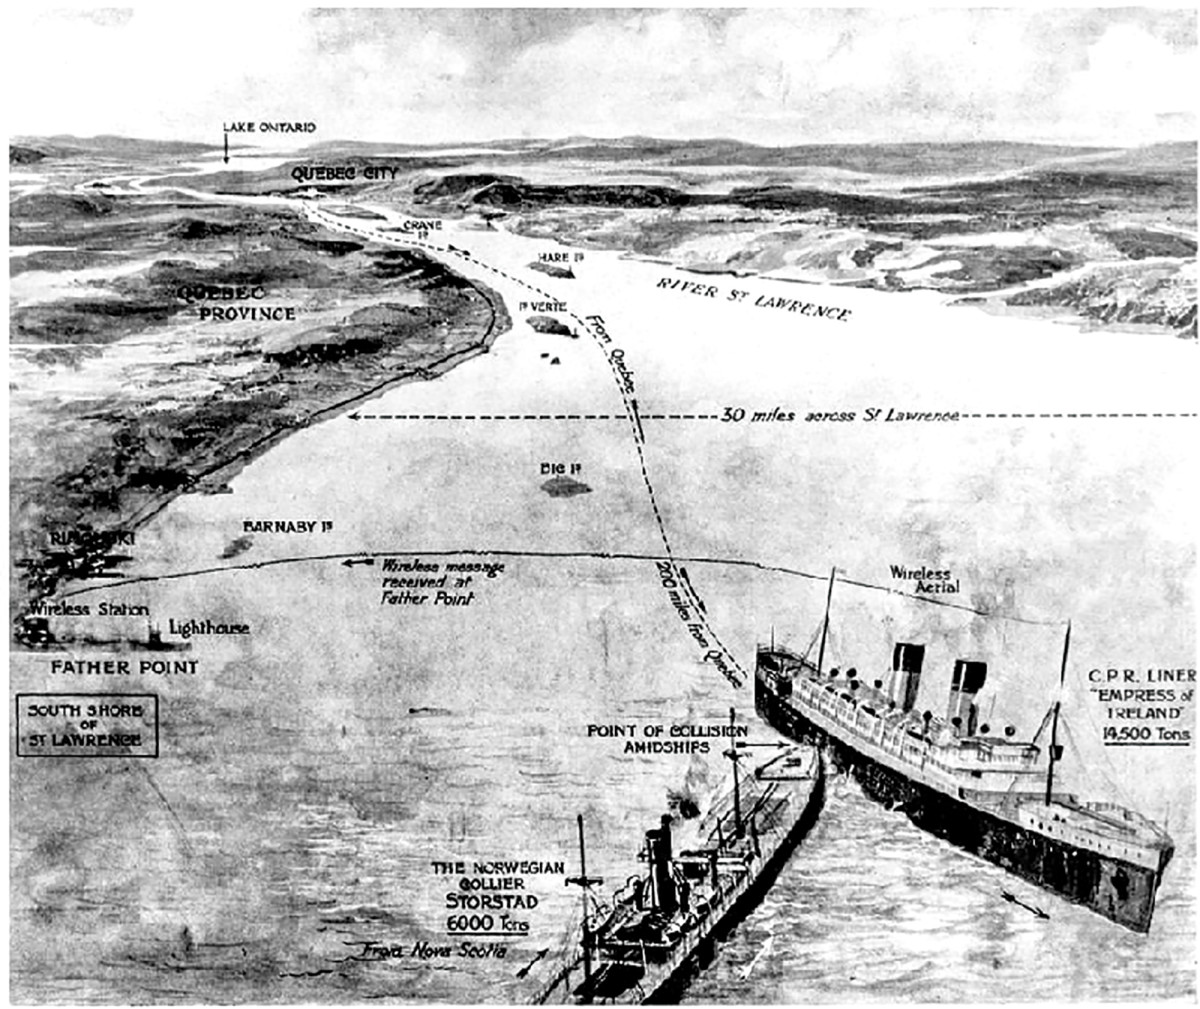 Diagram of the ships' courses and collision